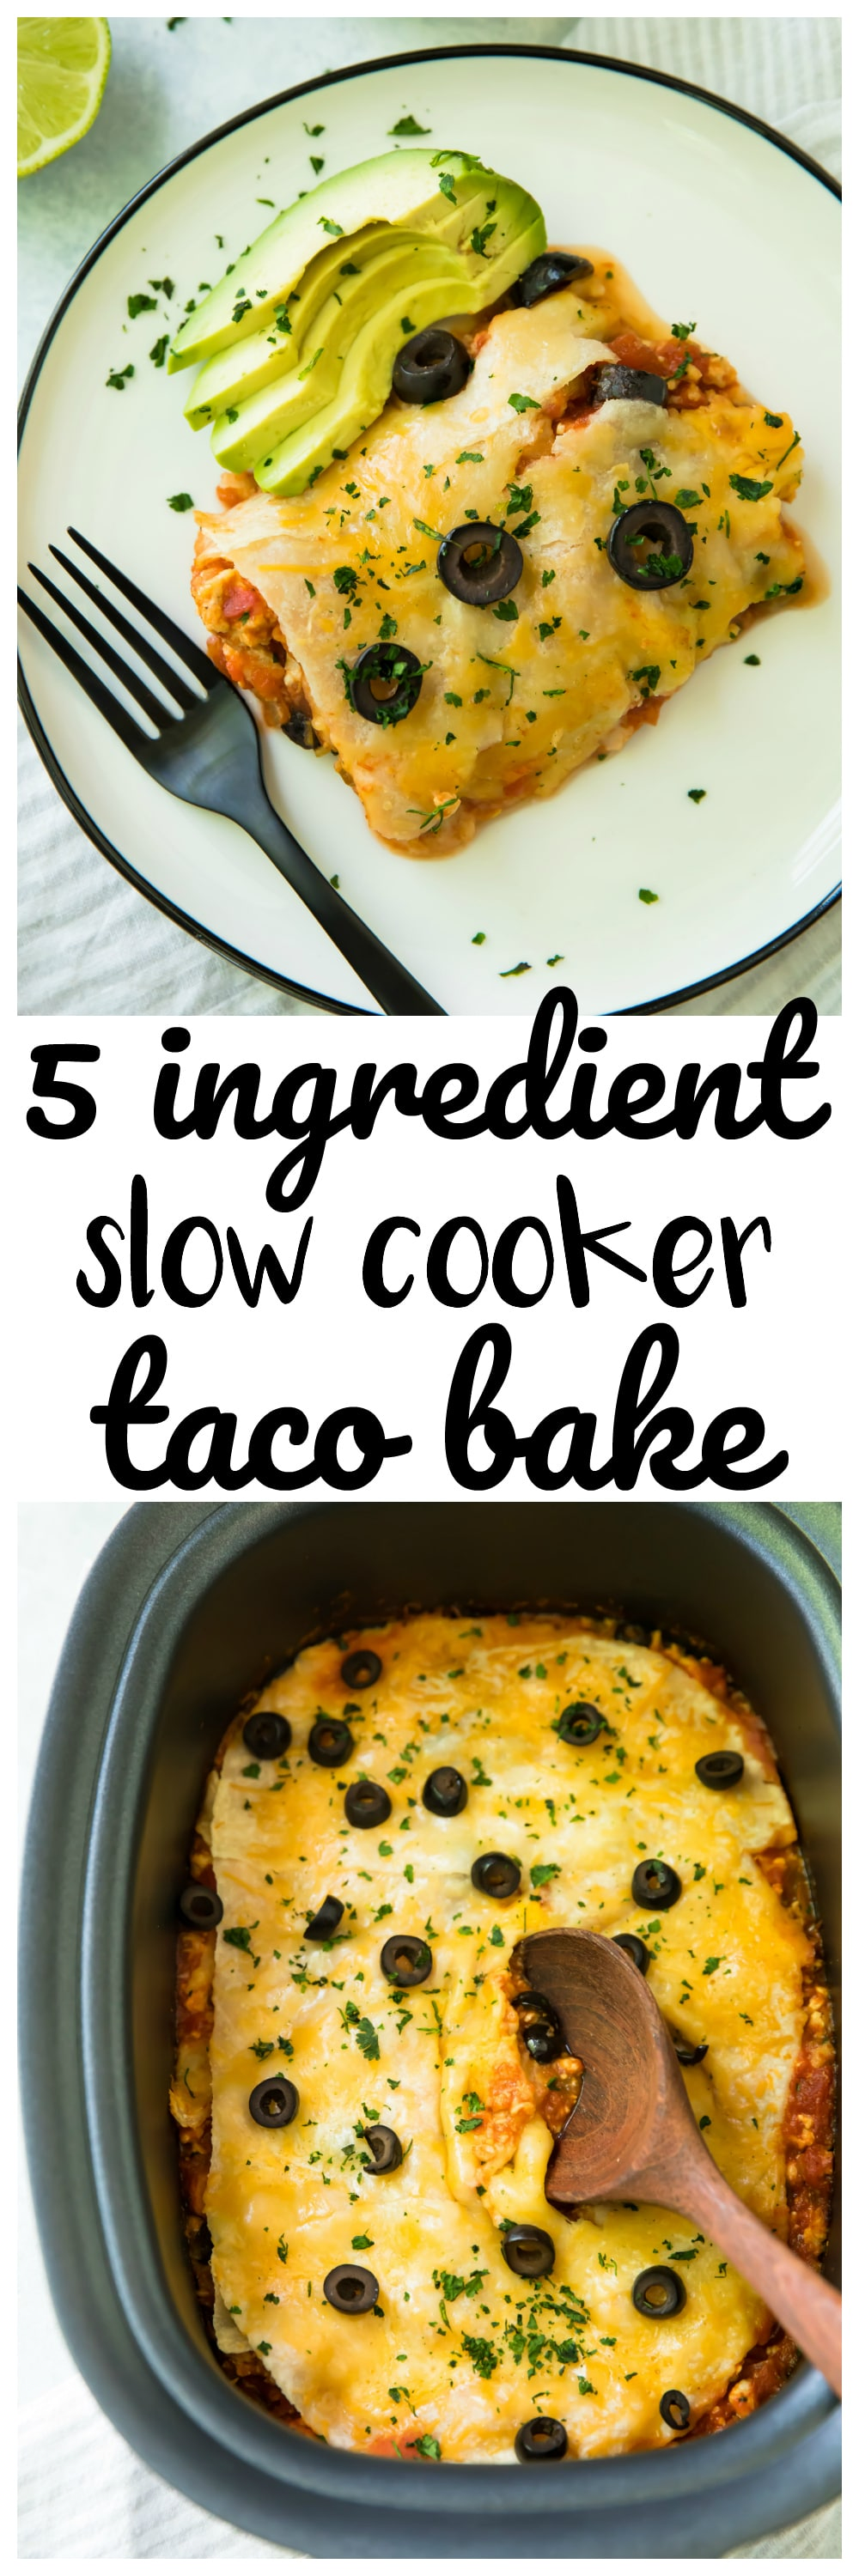 Healthy, easy 5 Ingredient Slow Cooker Taco Bake. Just set it and forget it for a cheesy, protein-packed meal the whole family will love!